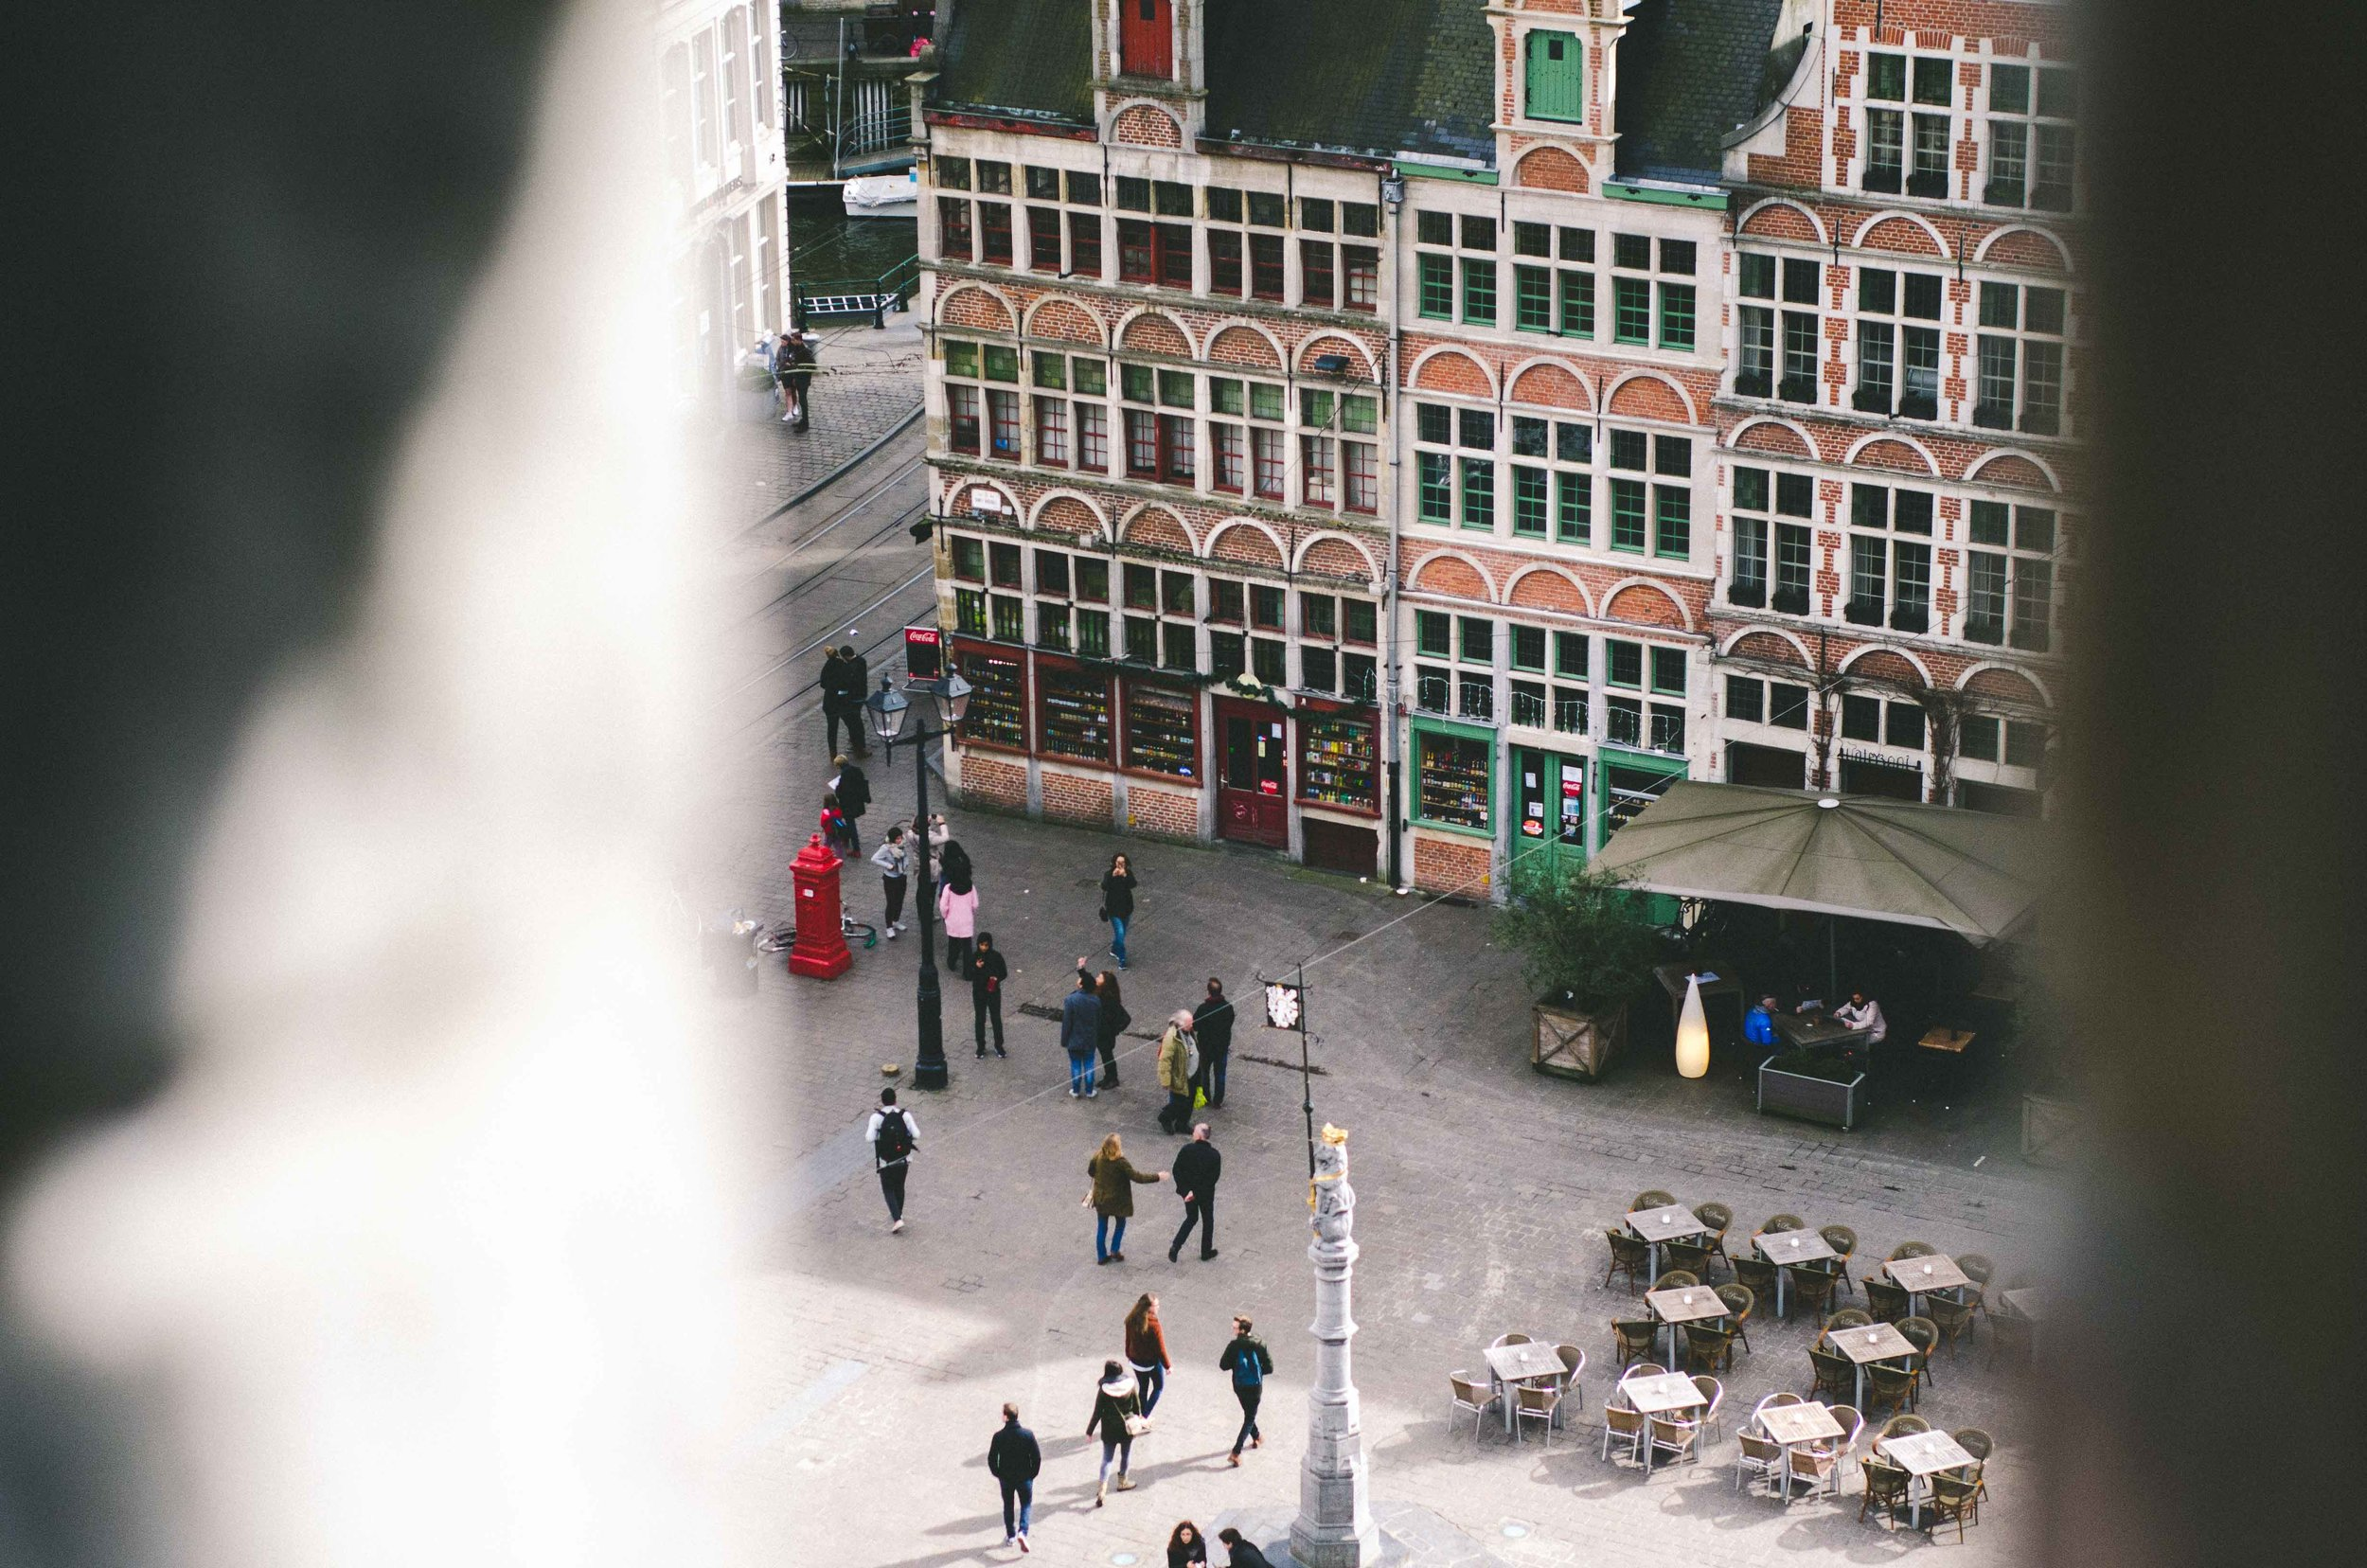 Tiny people // View from Gravensteen